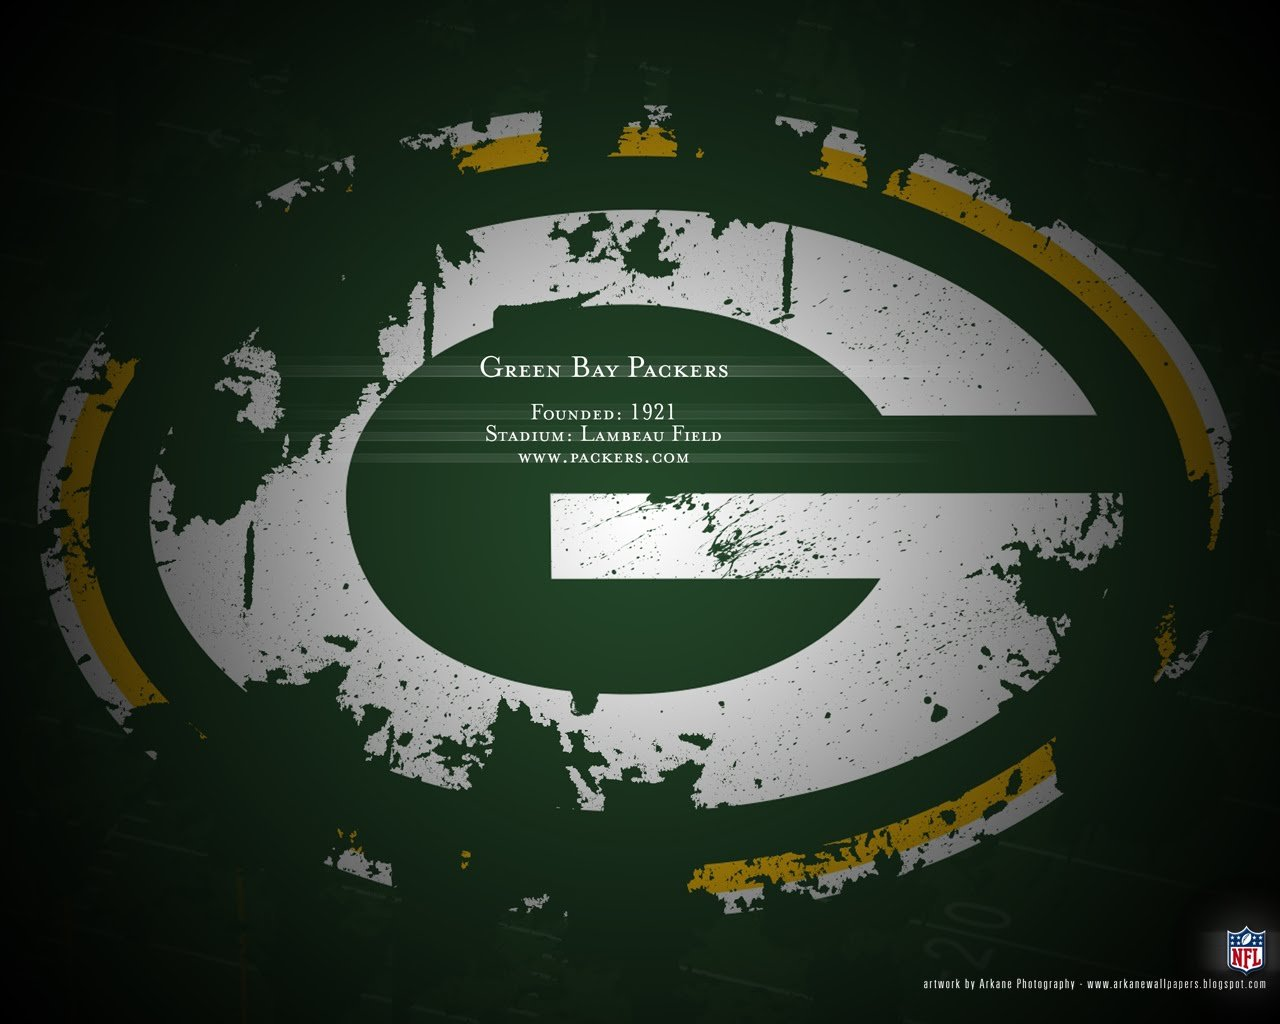 Green Bay Packers Wallpapers Hd For Desktop Backgrounds